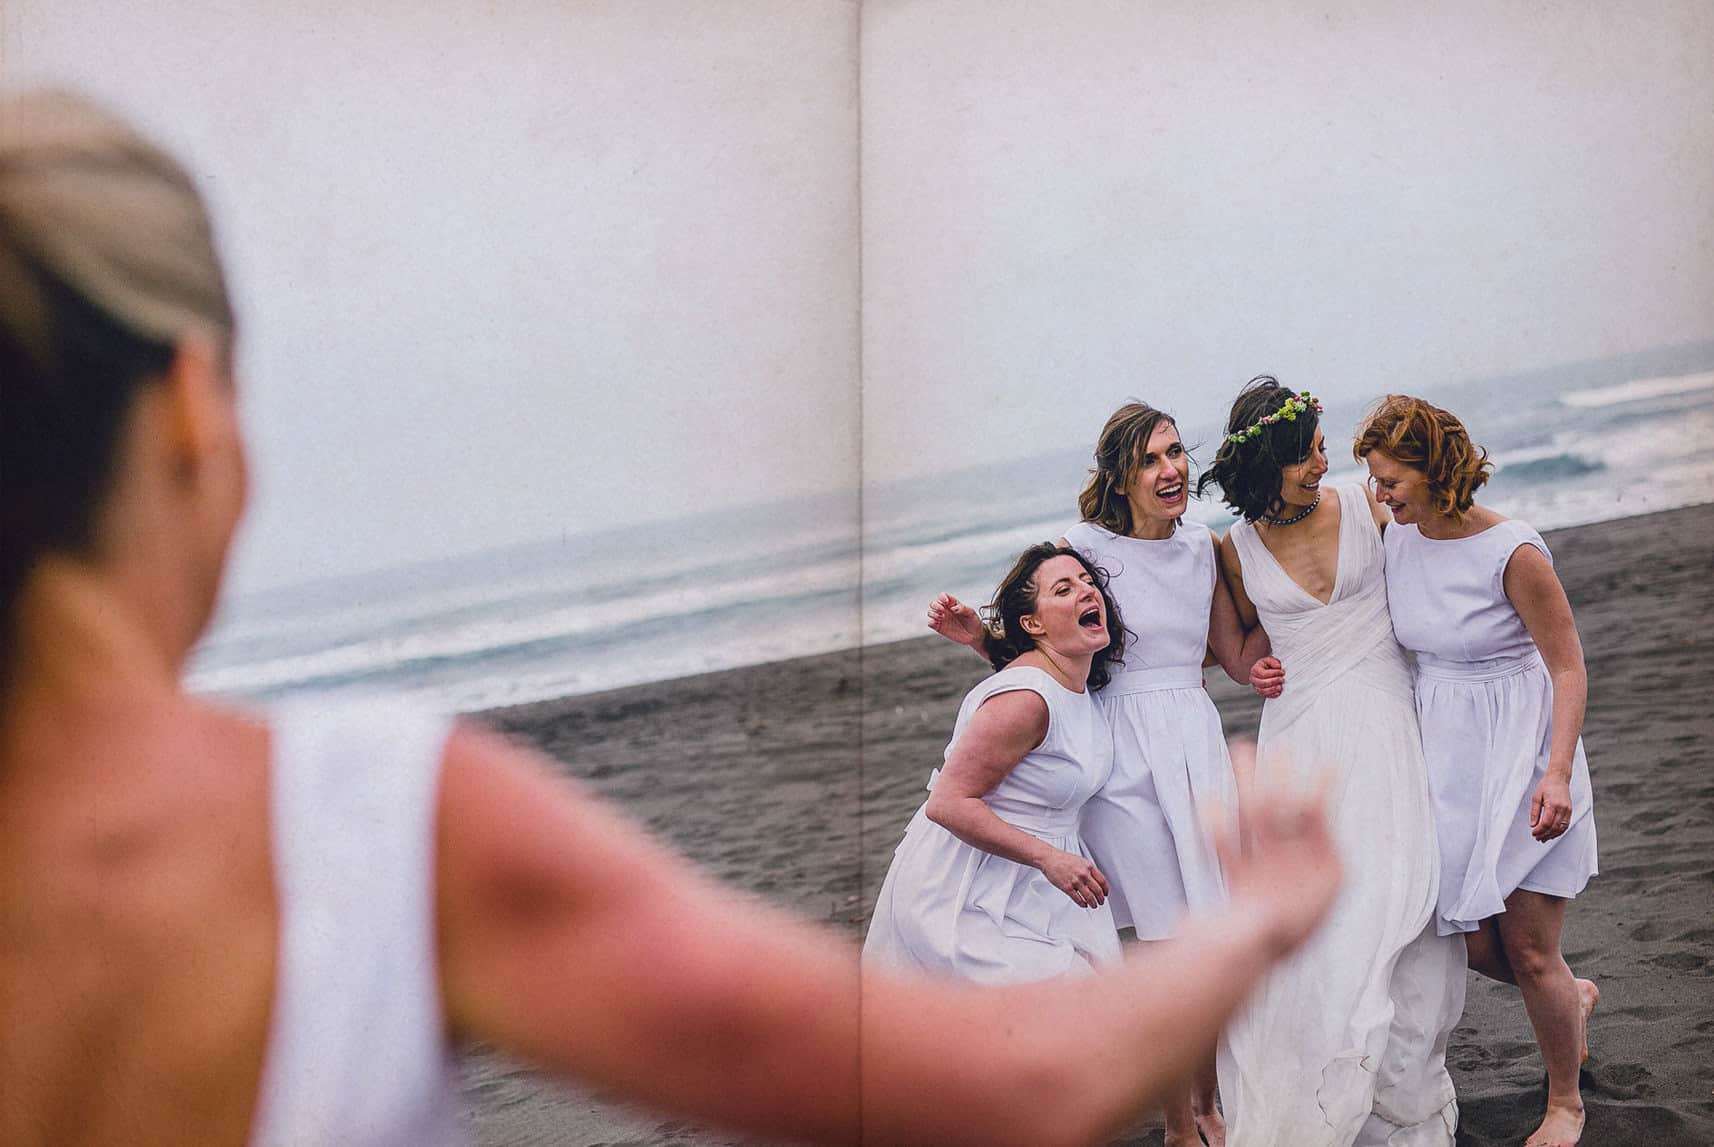 bride maids run to hug the bride at the beach